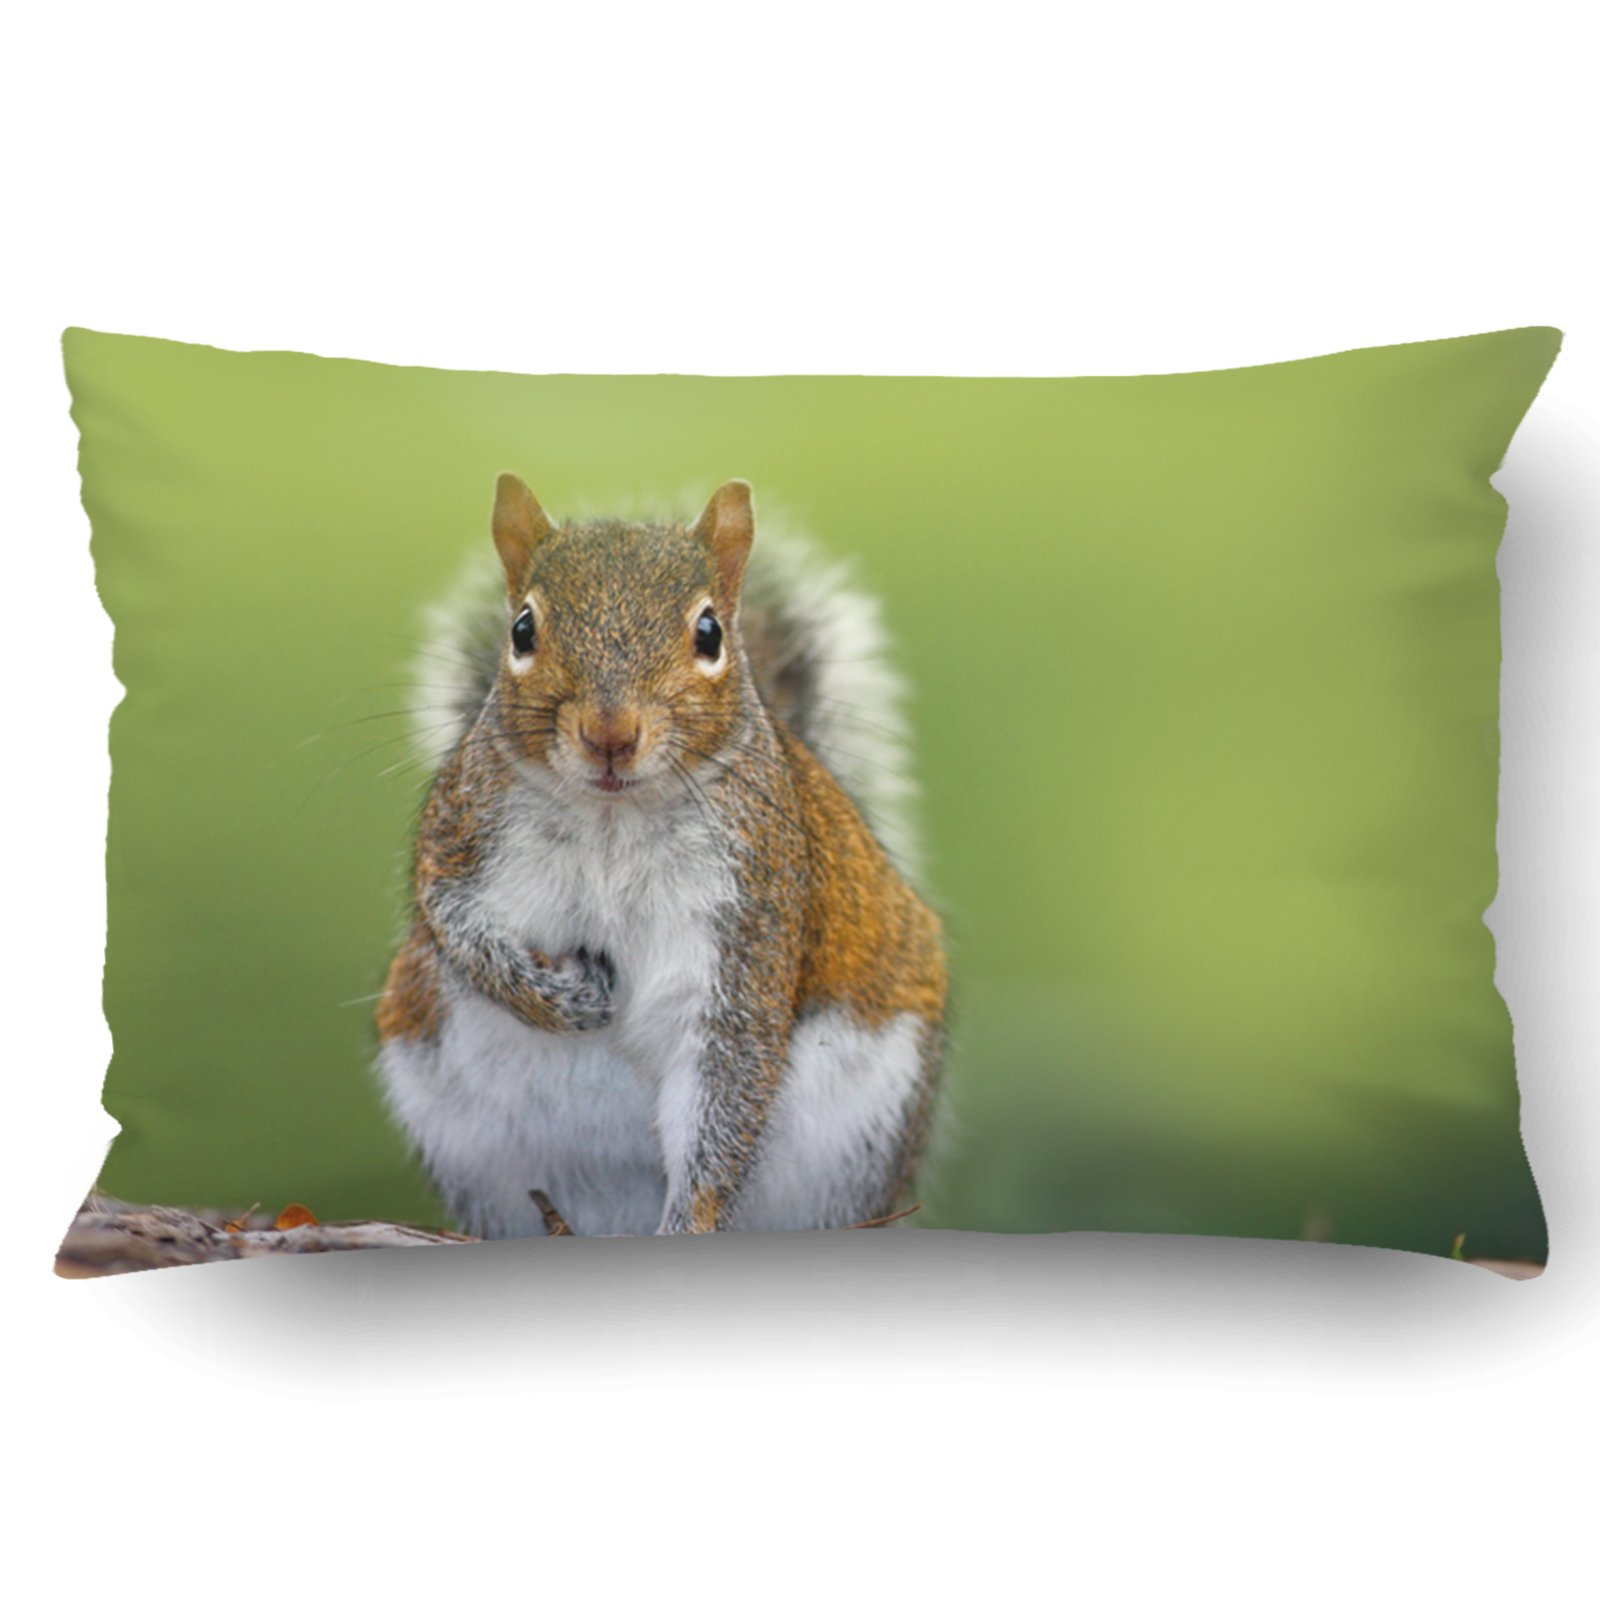 Emvency Pillow Covers Decorative Funny Image From Wild Nature Gray Squirrel Sciurus Carolinensis Cute Animal Bulk With Zippered 20x30 Queen Pillow Case For Home Bed Couch Sofa Car One Sided